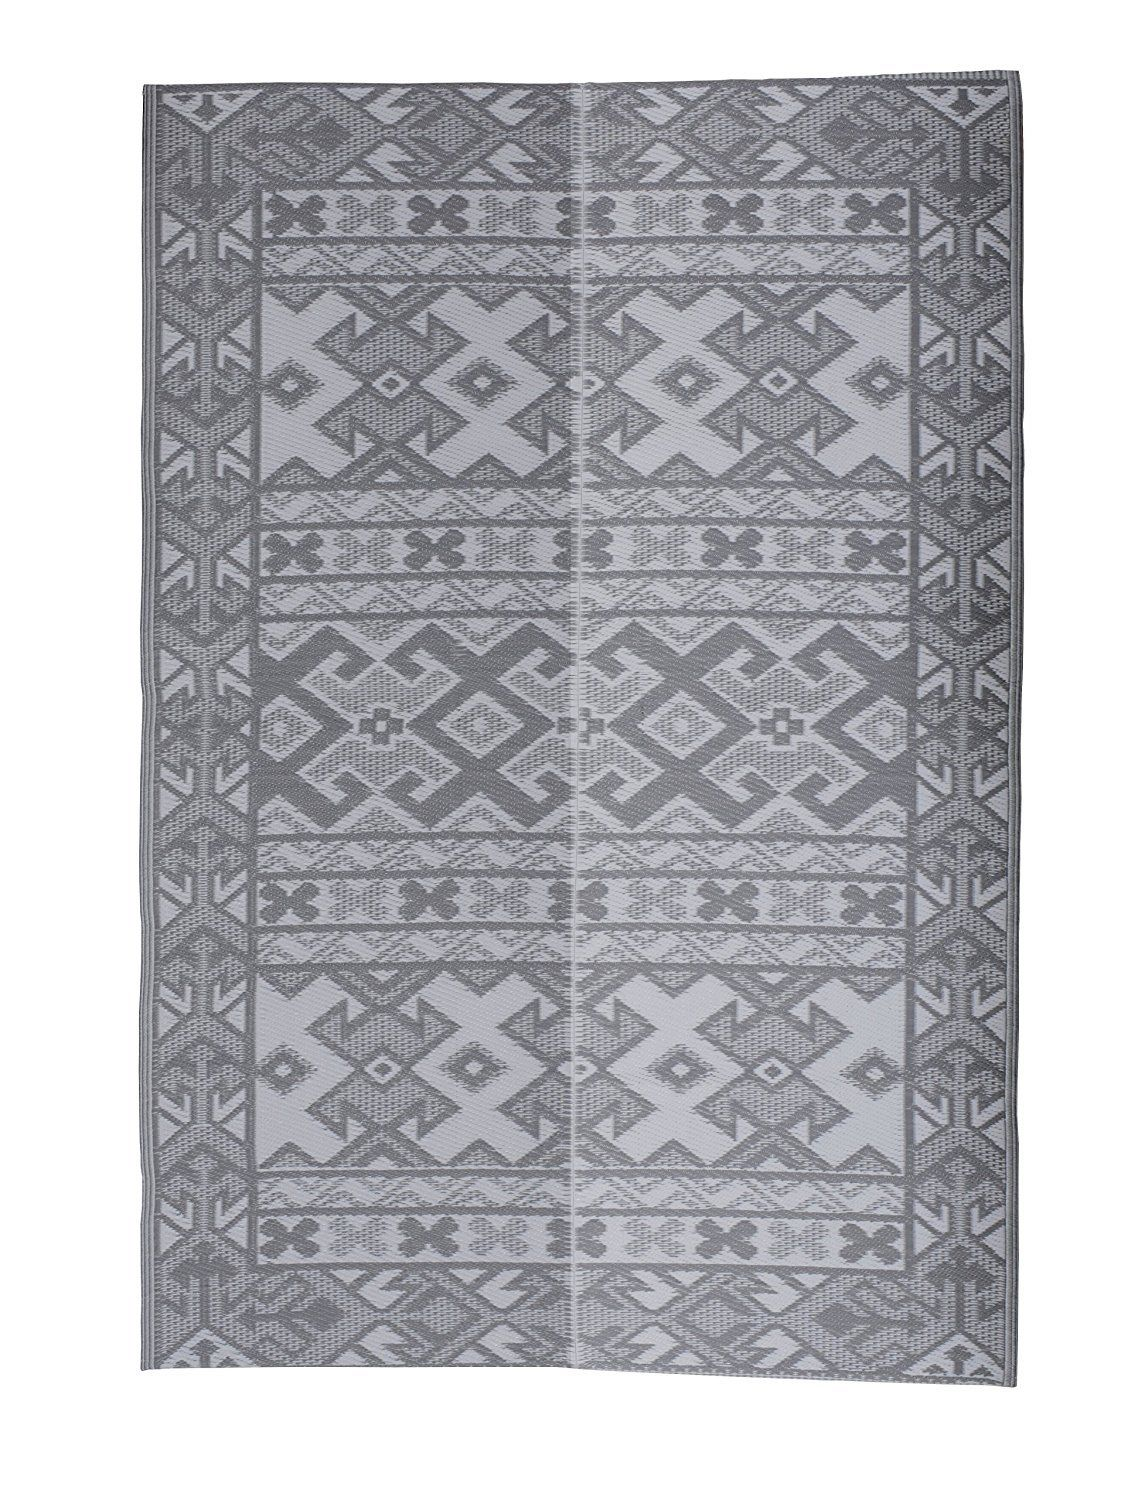 Teen Girl Bedrooms Savon Southwest Rug Outdoor Mat Sleeping Mat